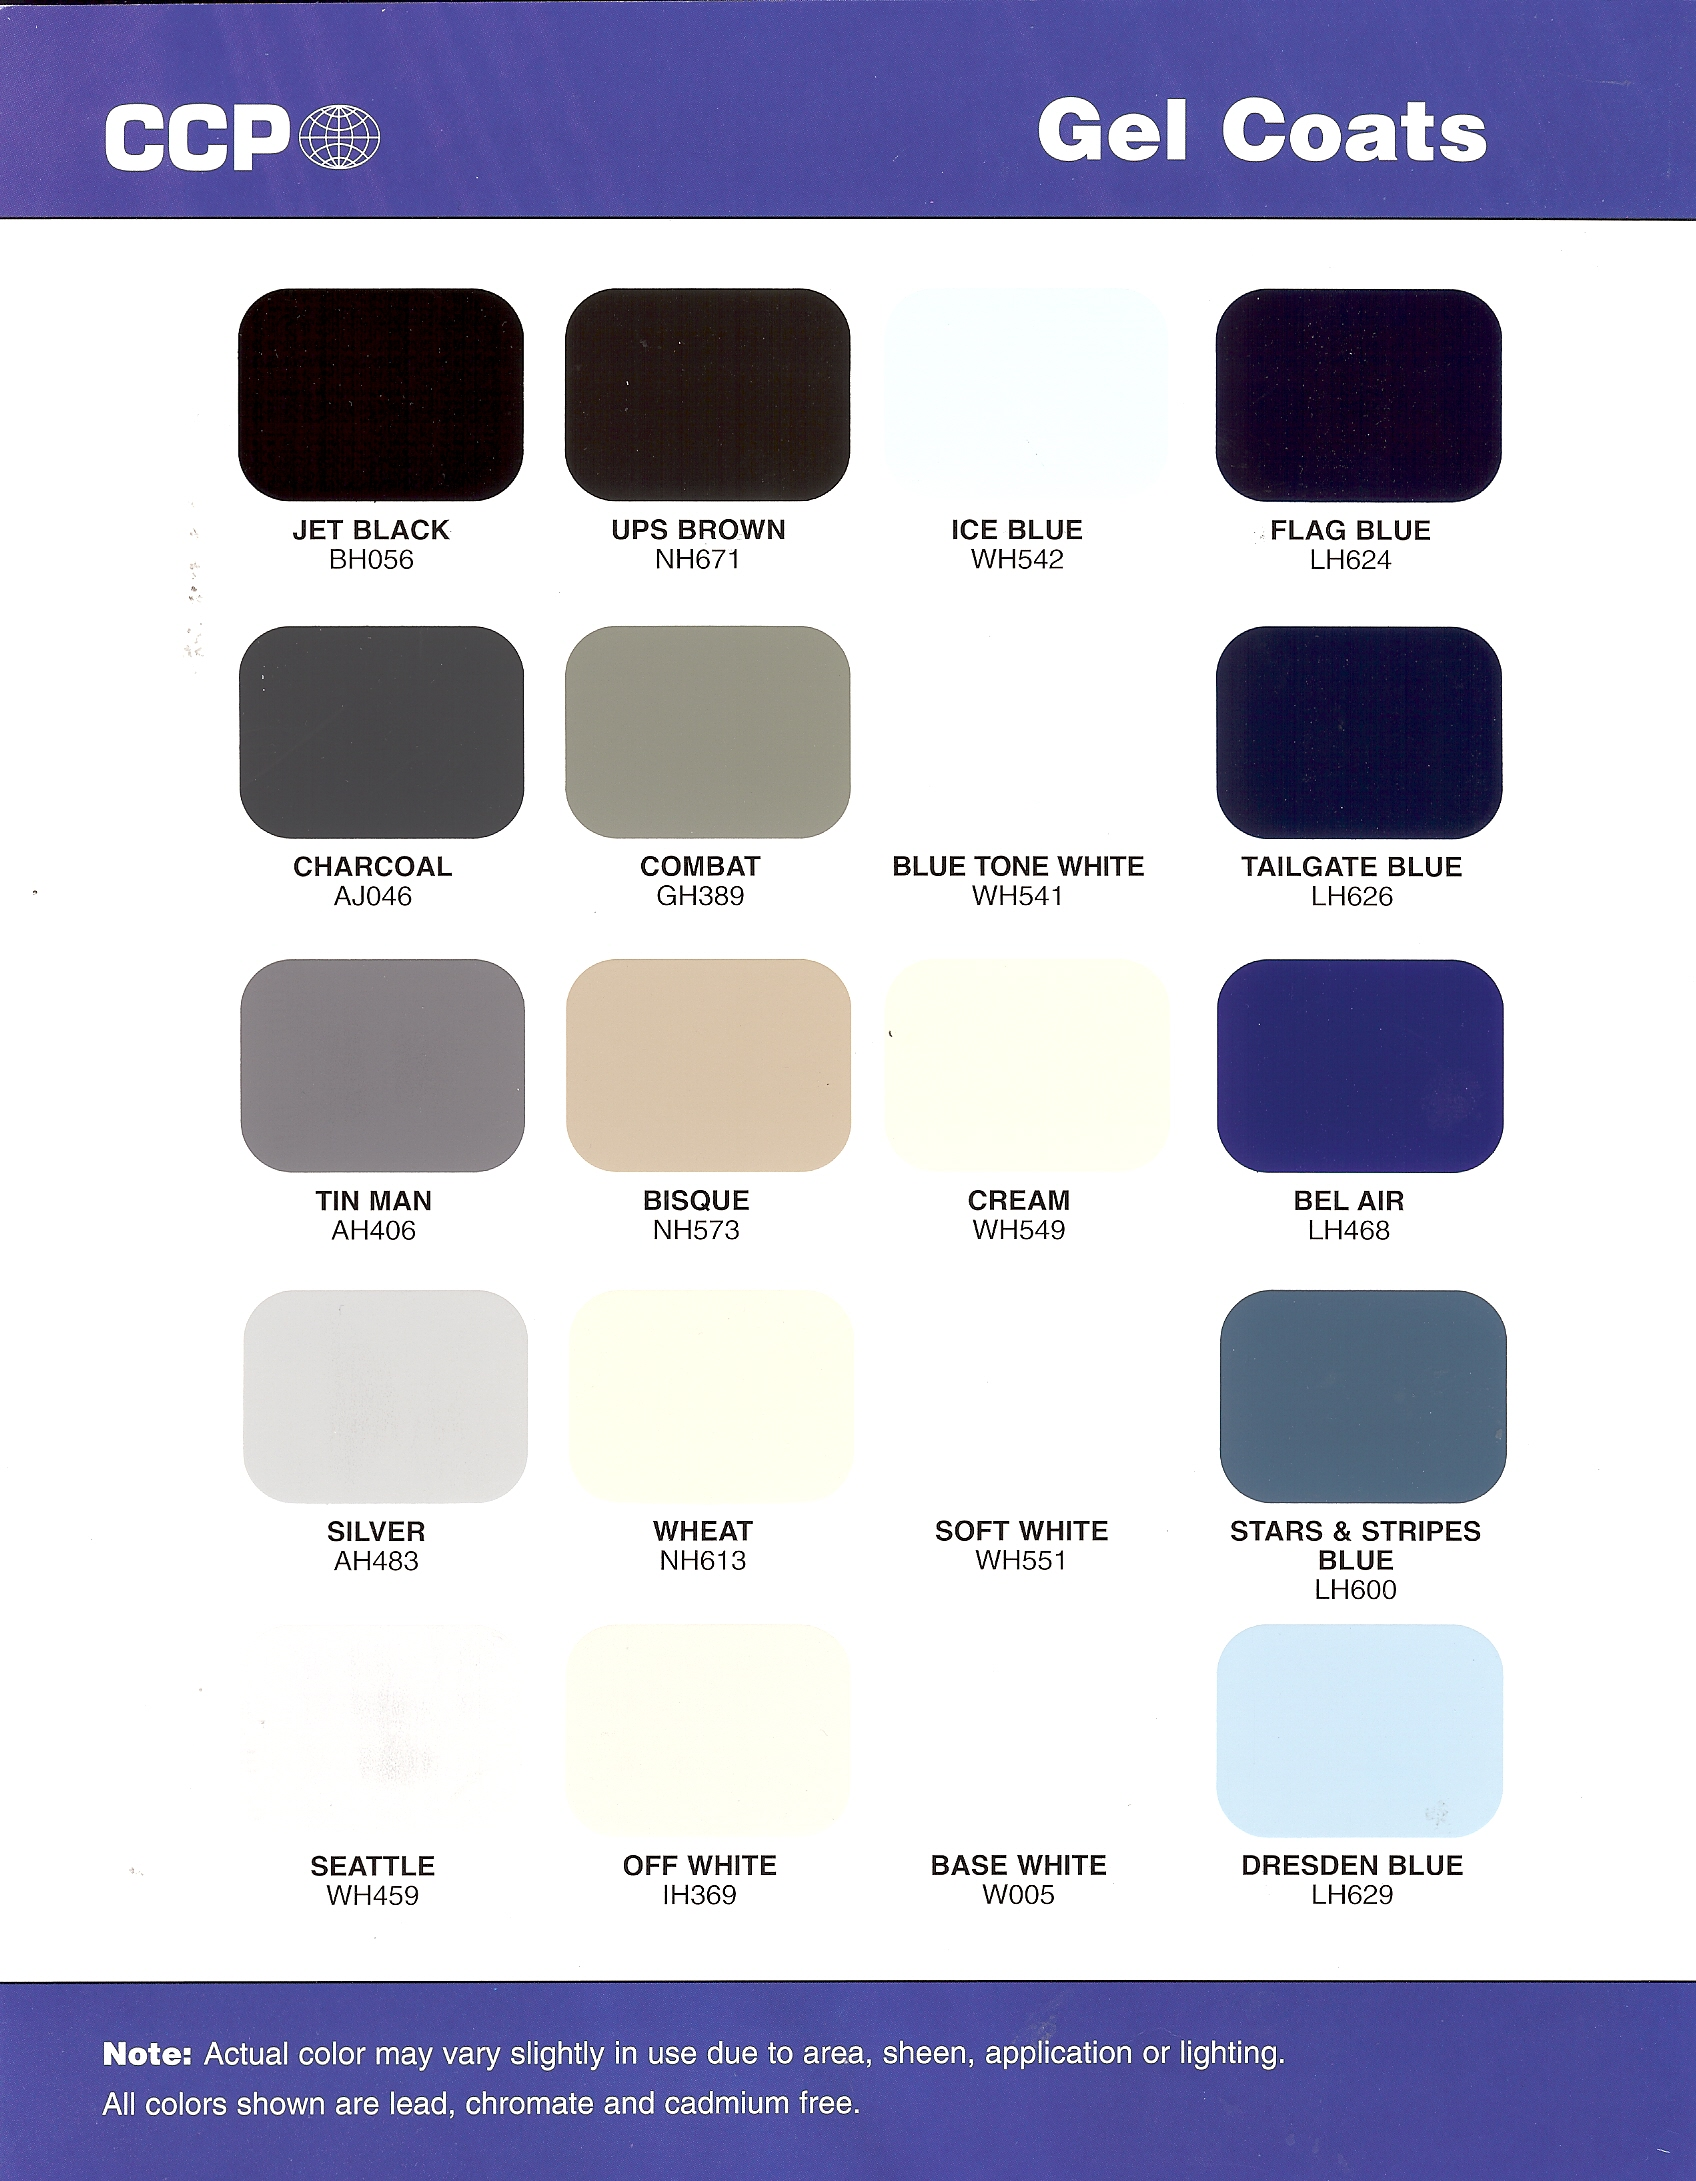 gel coat colors 28 images stuart marine corp gel coat colors spectrum color neutral base. Black Bedroom Furniture Sets. Home Design Ideas